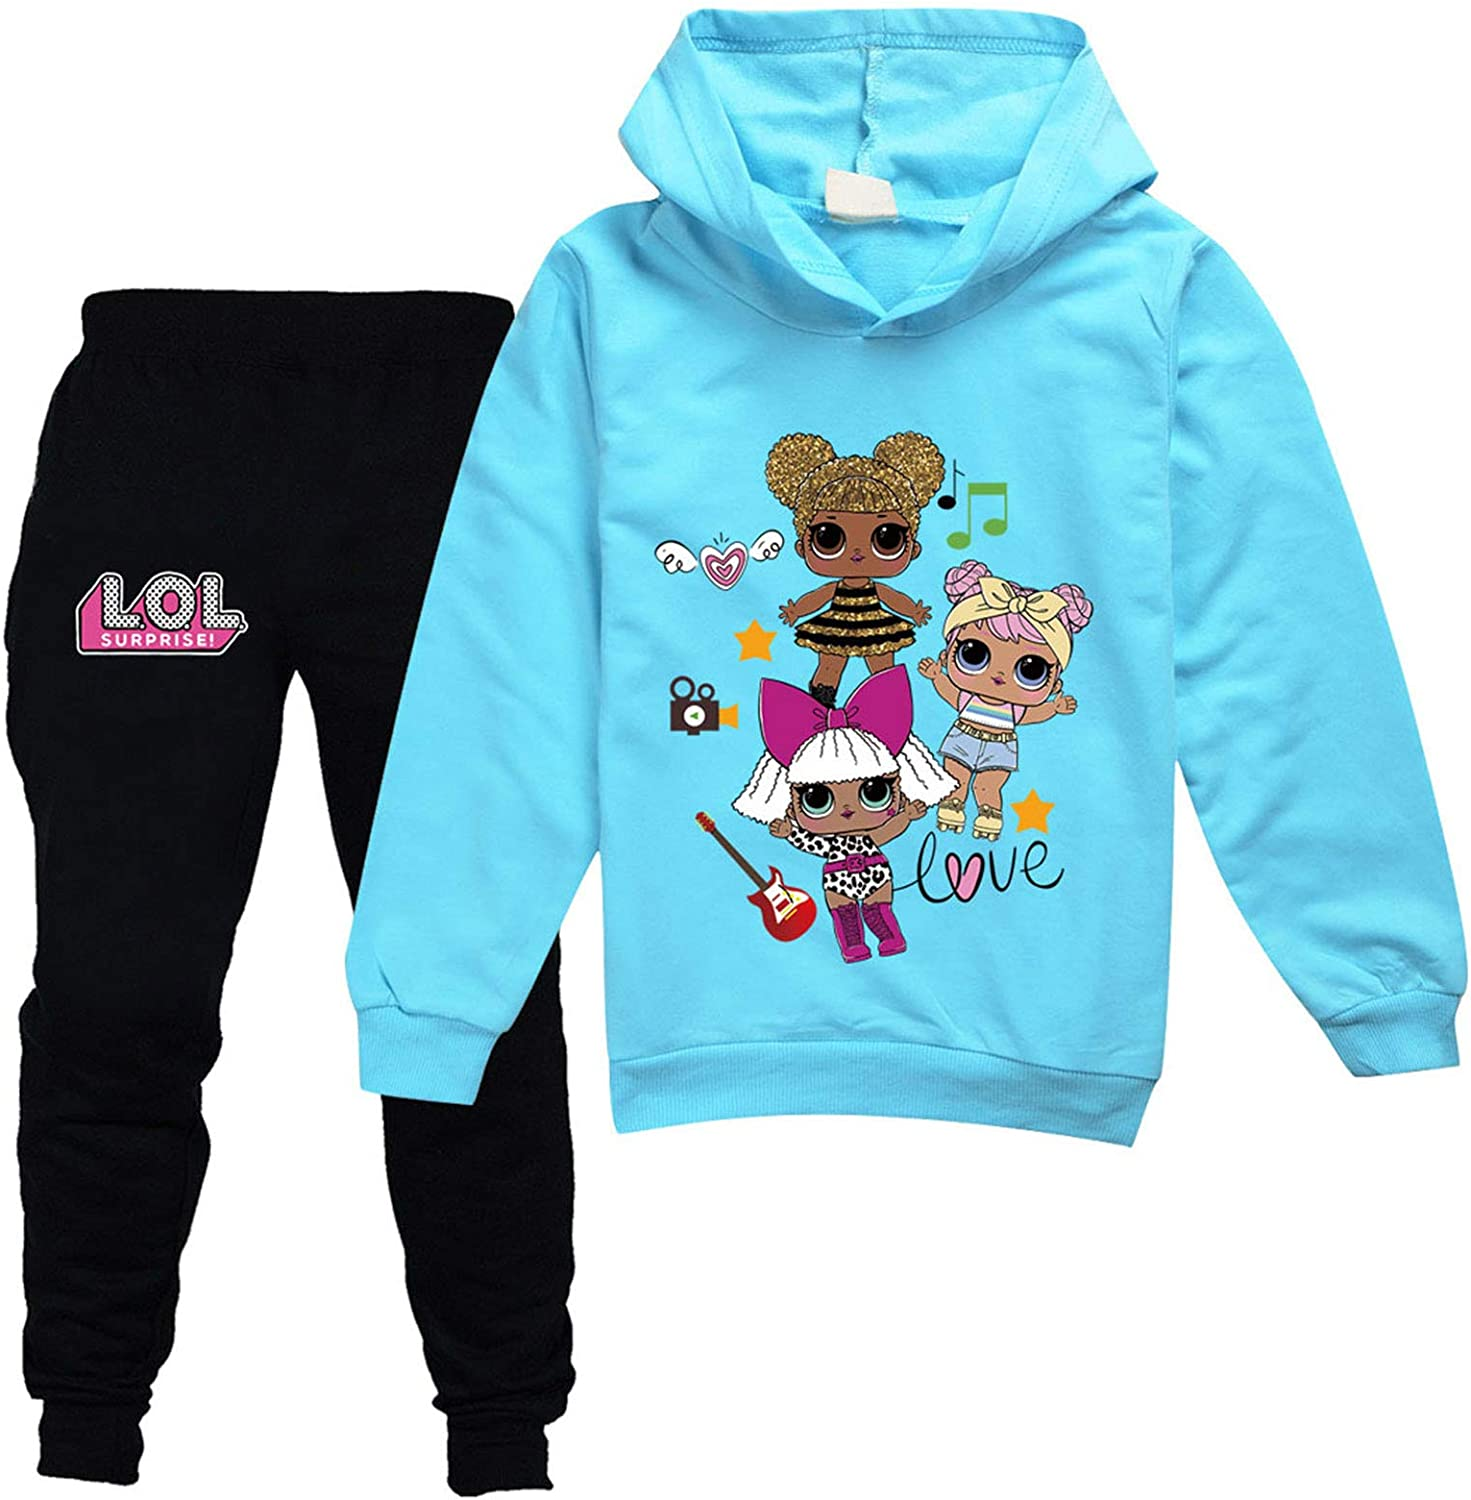 Cute Girls Hoodie Sweater and Sweatpants Tracksuit Sets for Kids Toddler Girl Clothes Set